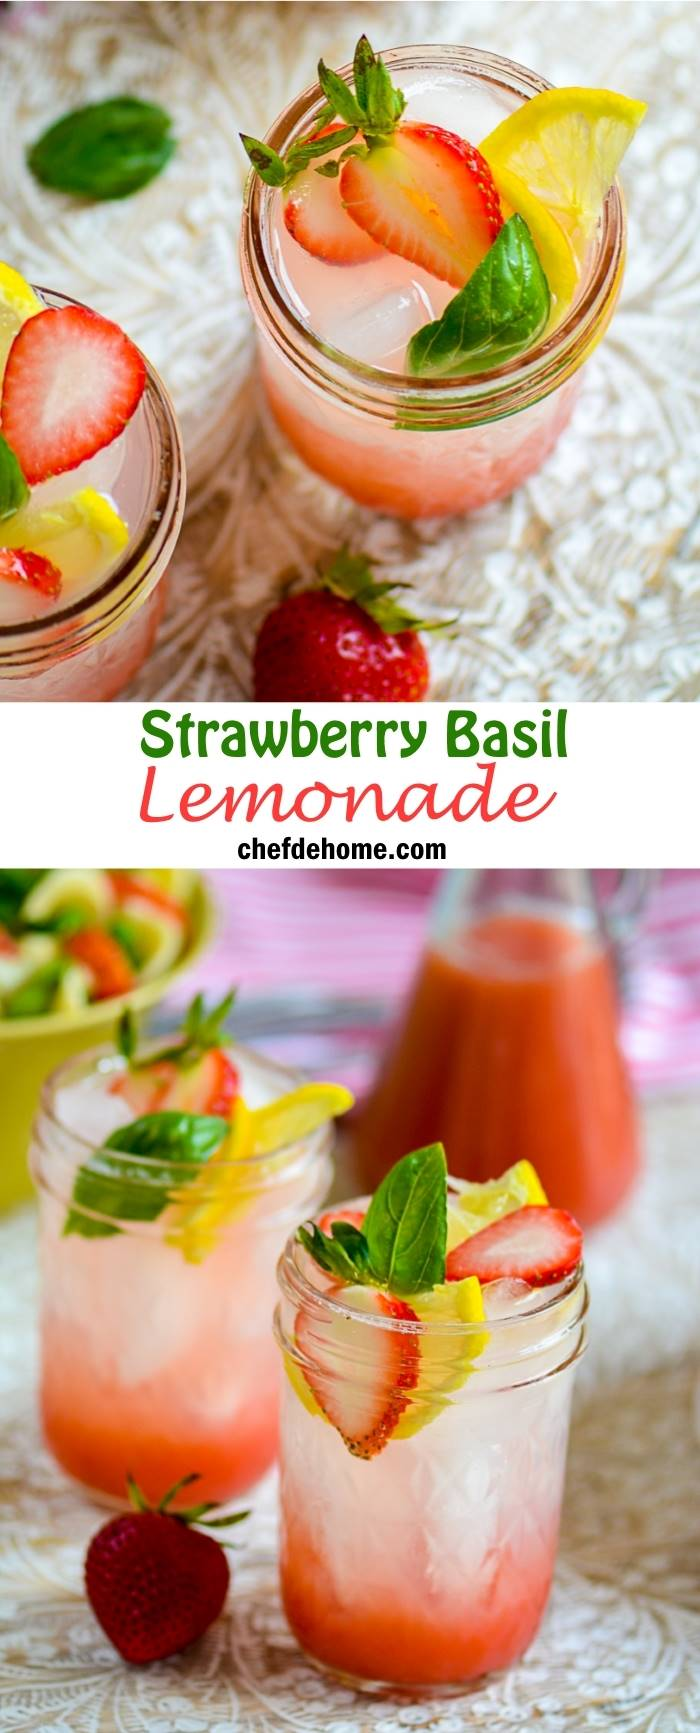 Easy Refreshing Fruity Strawberry Basil Lemonade | chefdehome.com